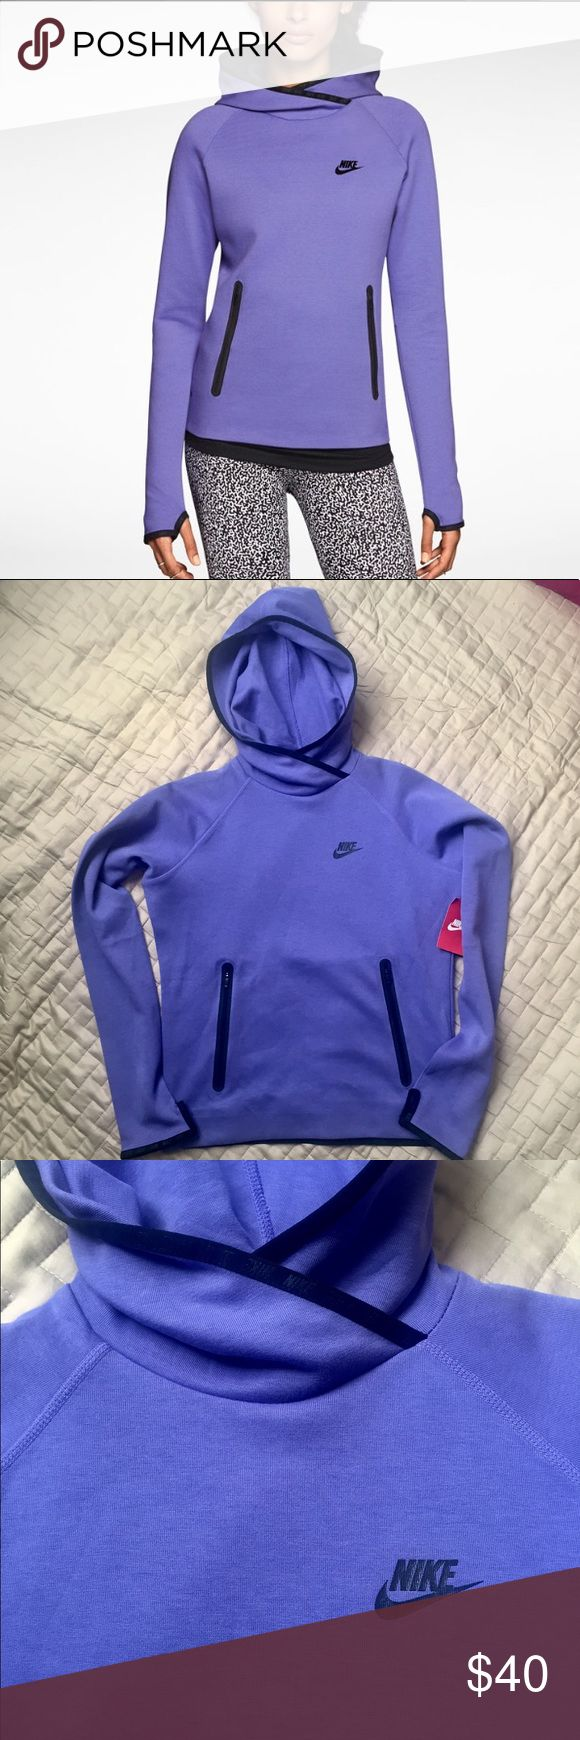 Nike tech fleece hoodie. Women's Size M. NWT Nike tech fleece hoodie size M in beautiful purple shade. Thumbholes and kangaroo pockets. Perfect for fall and winter. Elbow detail and banded Nike logo design on back. NWT. Excellent condition. Warmth without the weight.    📦 Bundle and save! 🥂 Reasonable offers welcome 🚫 No trades at the moment 🤔 Any questions, please ask! Nike Tops Sweatshirts & Hoodies